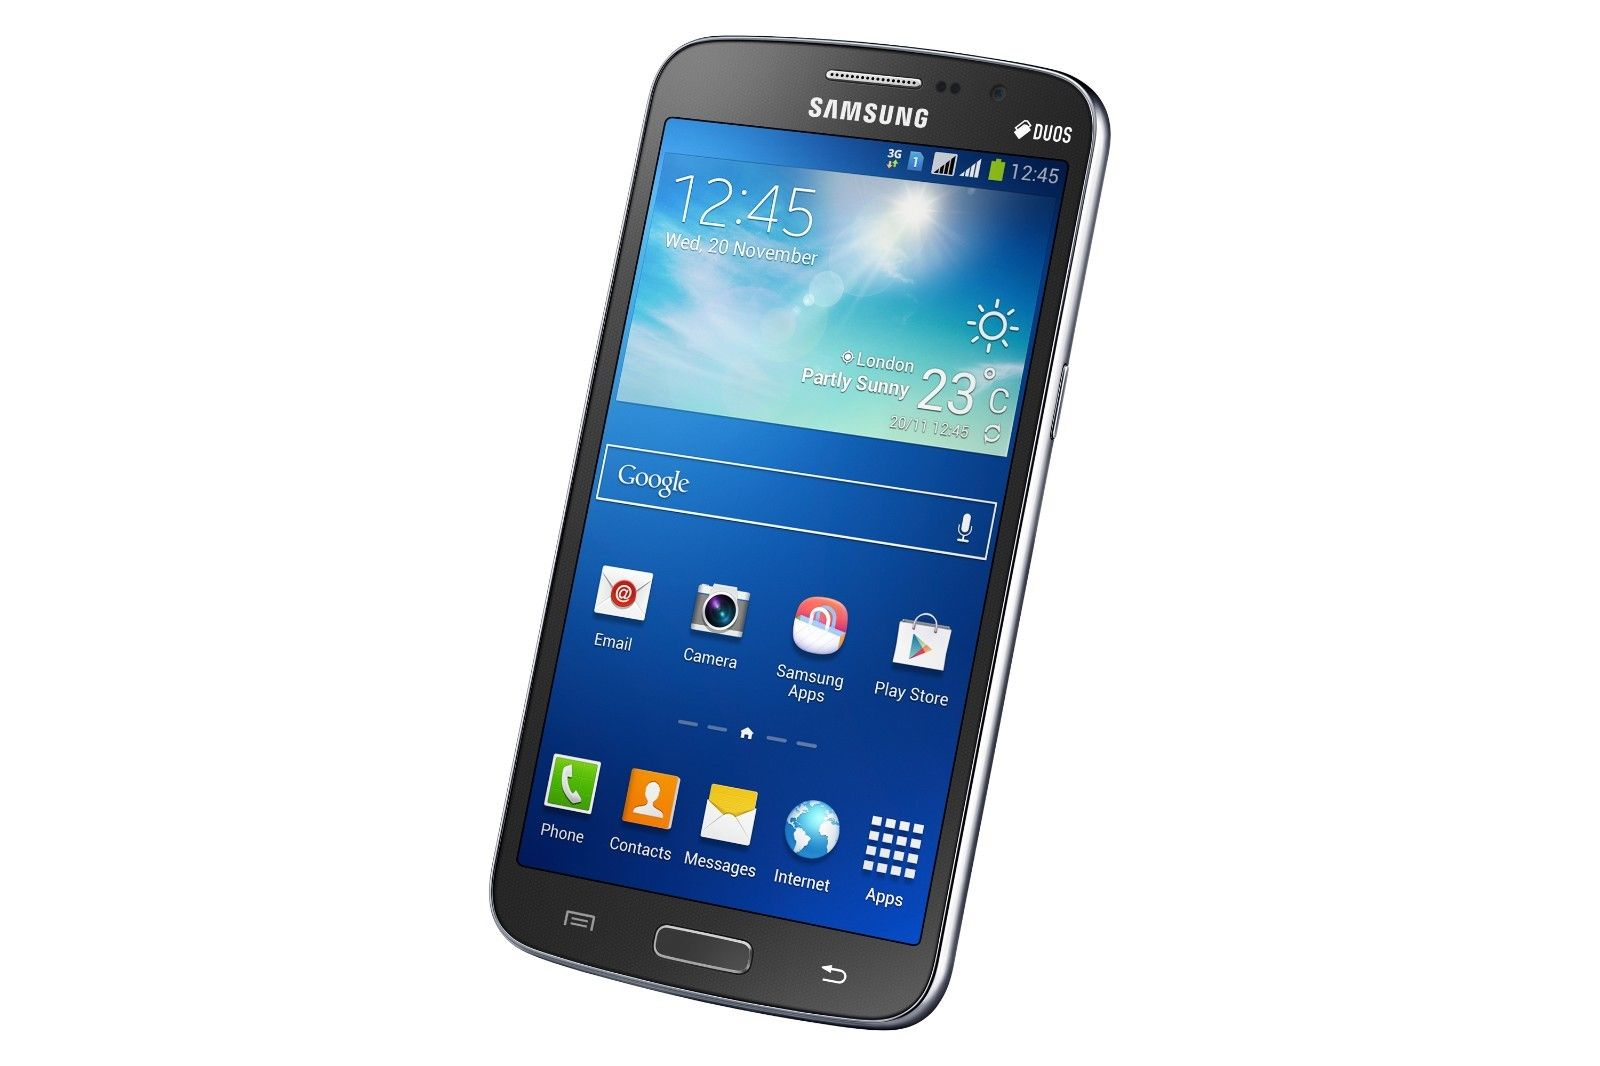 Samsung GALAXY GRAND 2 G7102 DUAL SIM Black